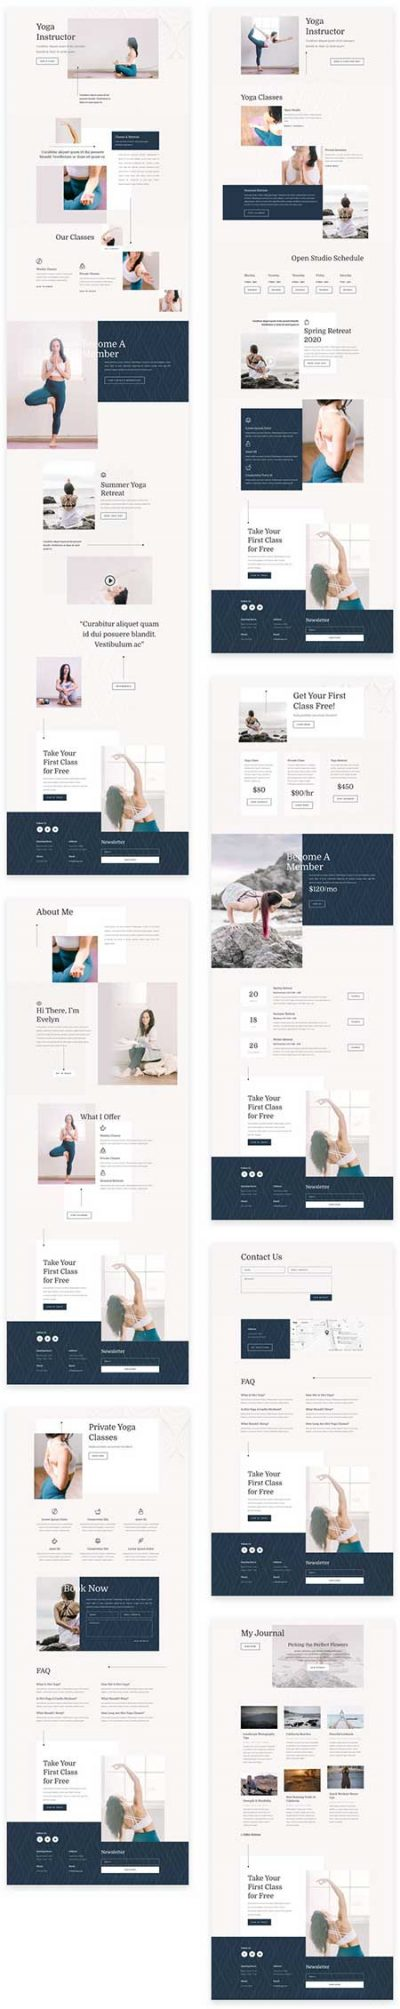 Divi yoga instructor layout pack